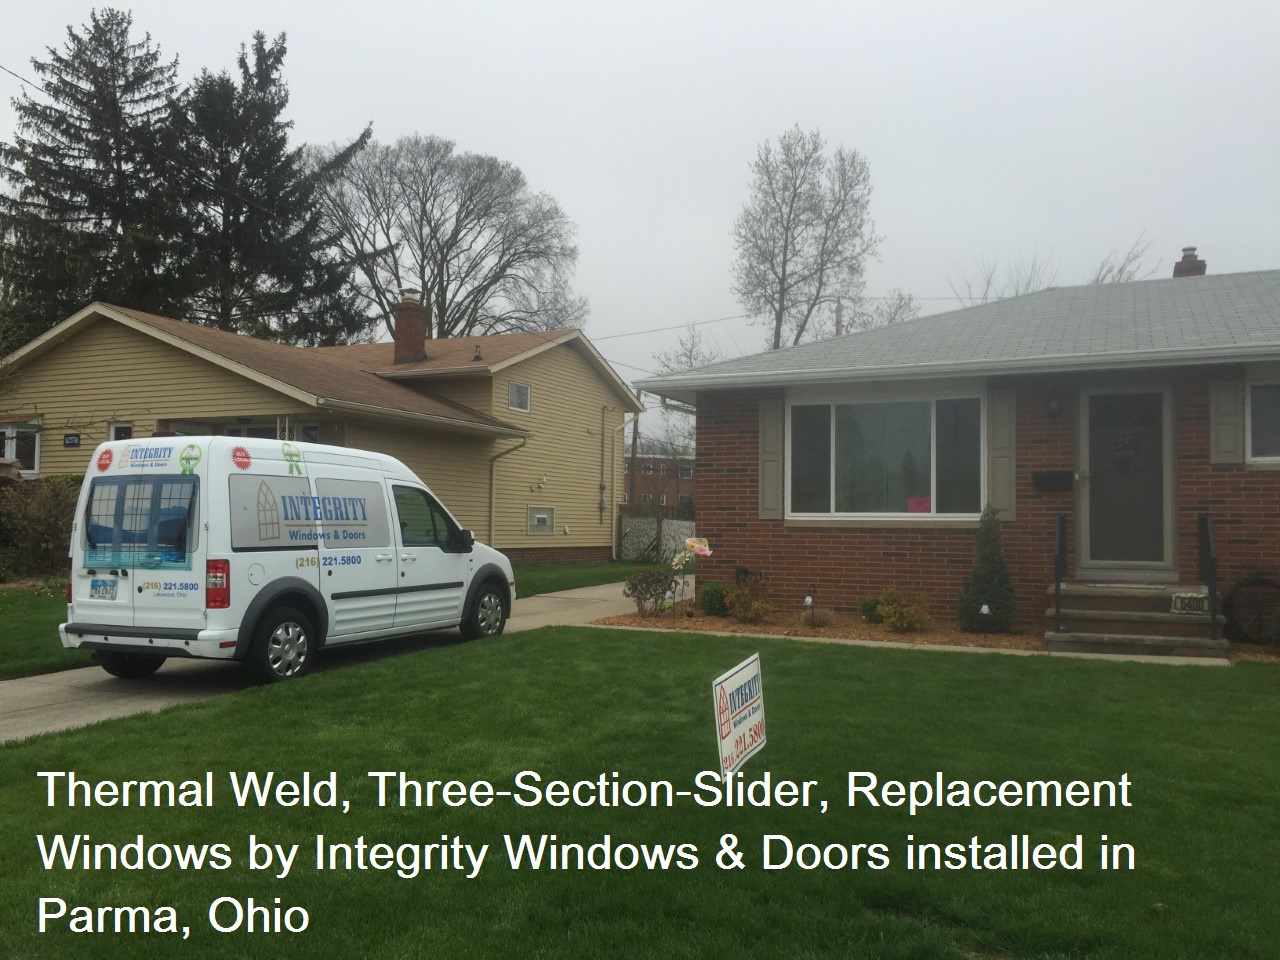 Parma, OH Replacement Windows: Thermal Weld Three-Section Slider